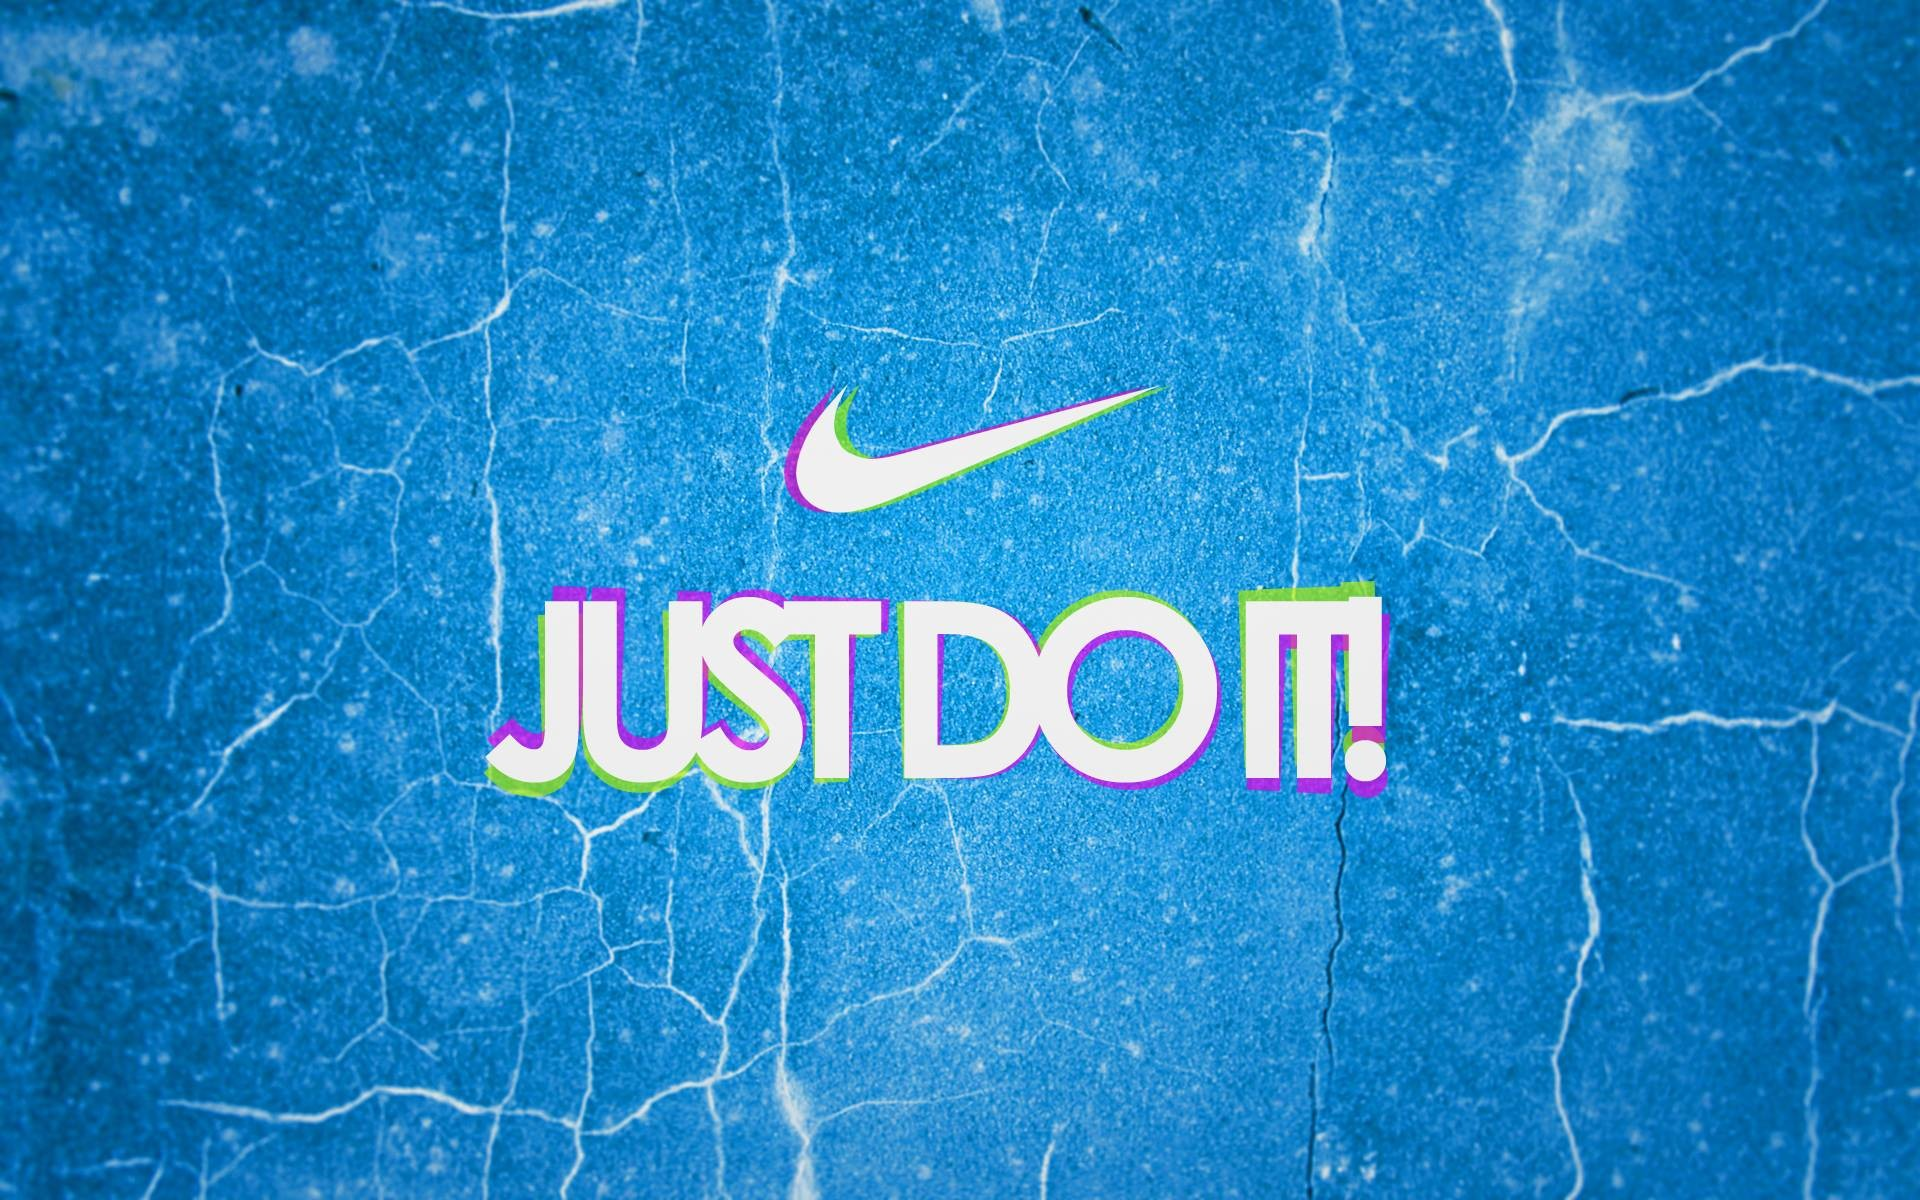 1920x1200 Just Do It Wallpaper HD | Wallpapers, Backgrounds, Images, Art Photos.